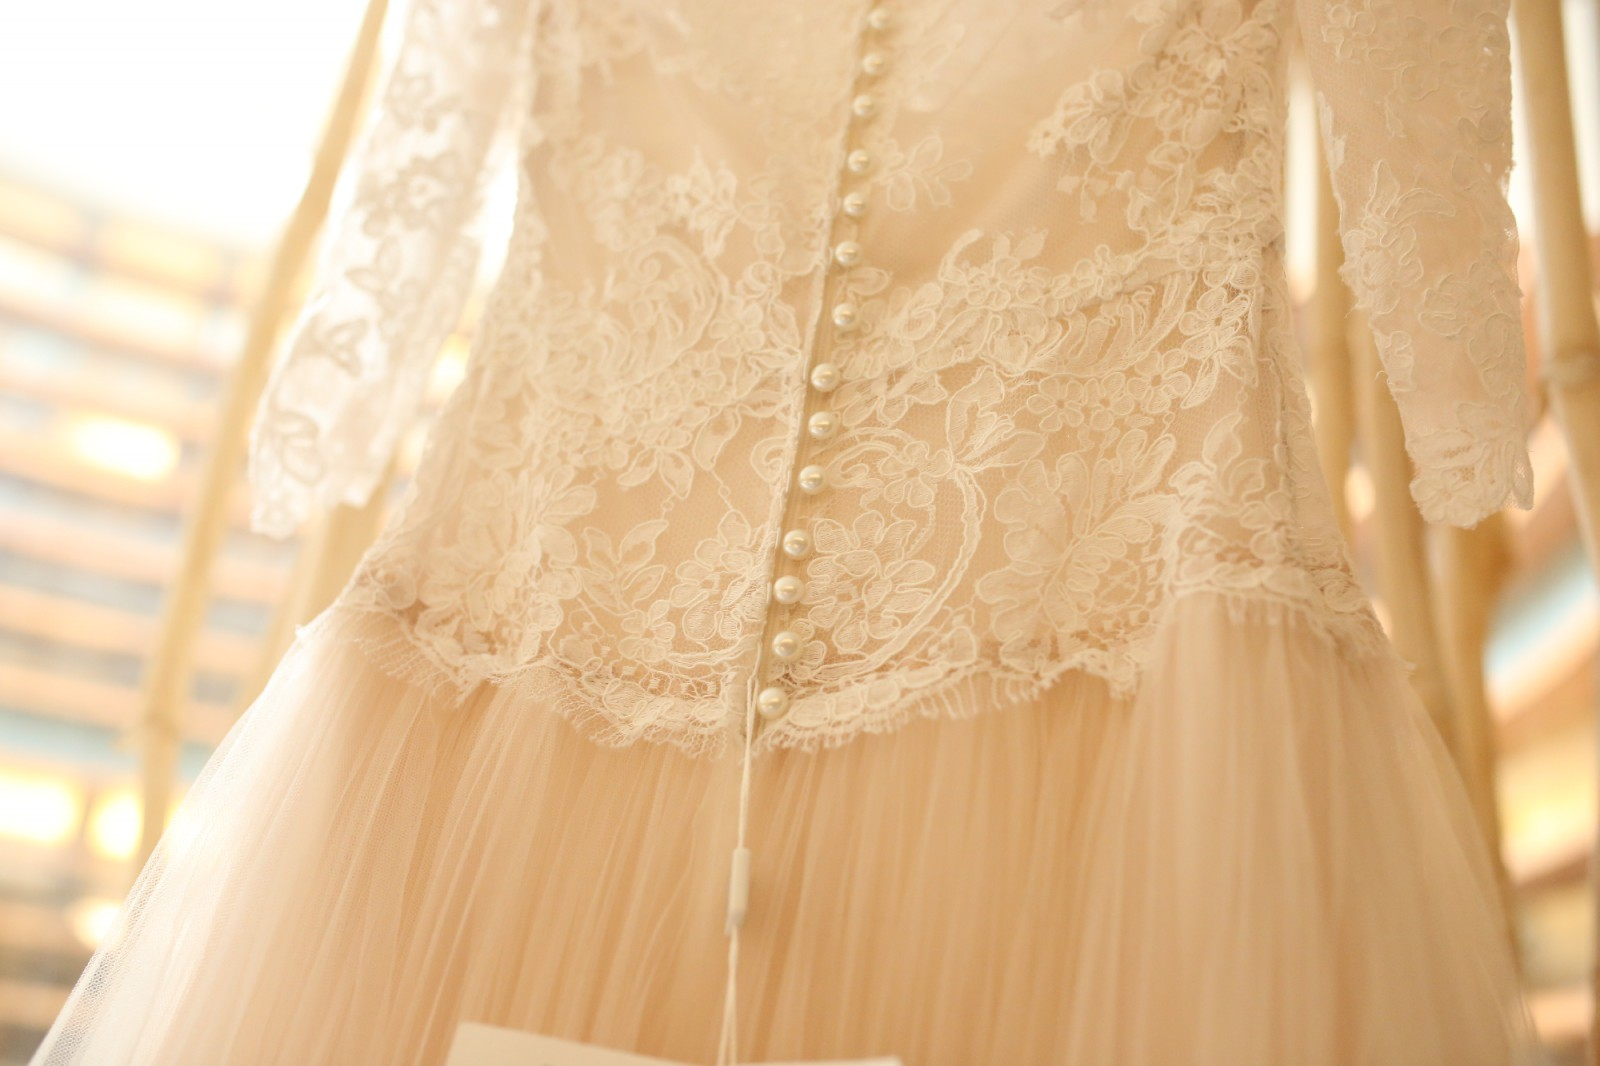 Le Spose Di Gio 319 Preloved Wedding Dress On Sale 71% Off